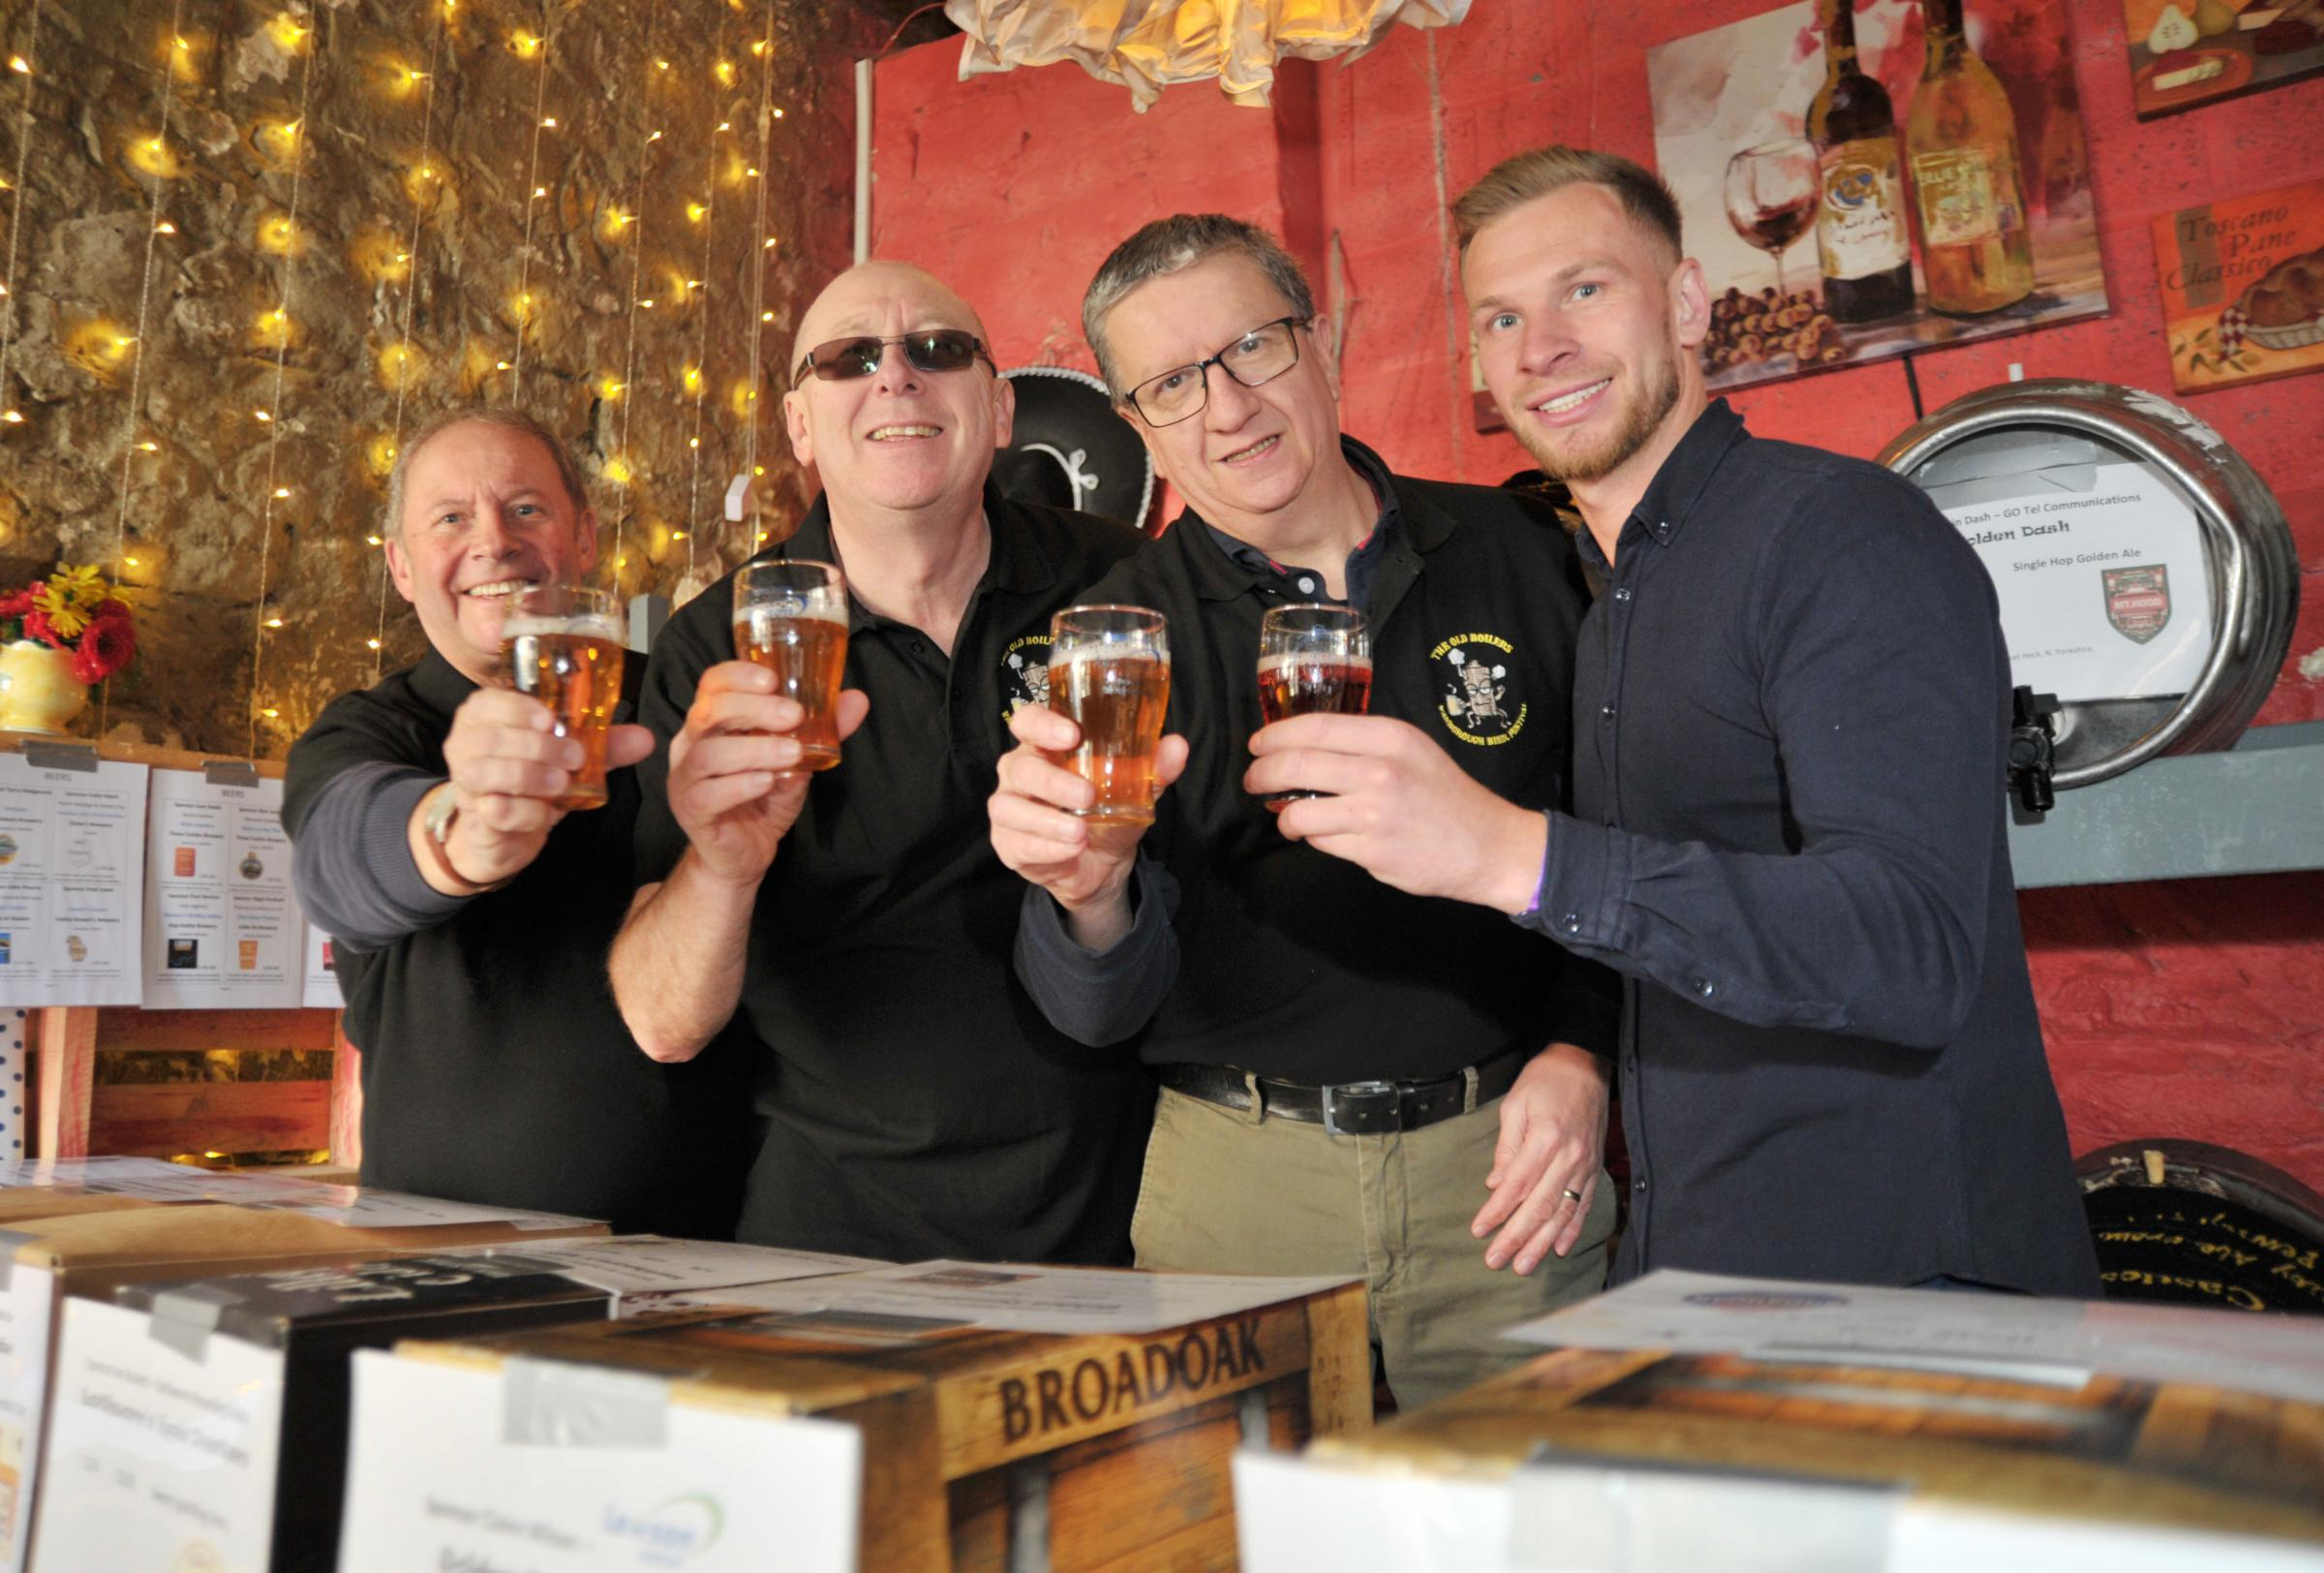 Punters pack into New Calley Arms to have a tipple or two at beer festival